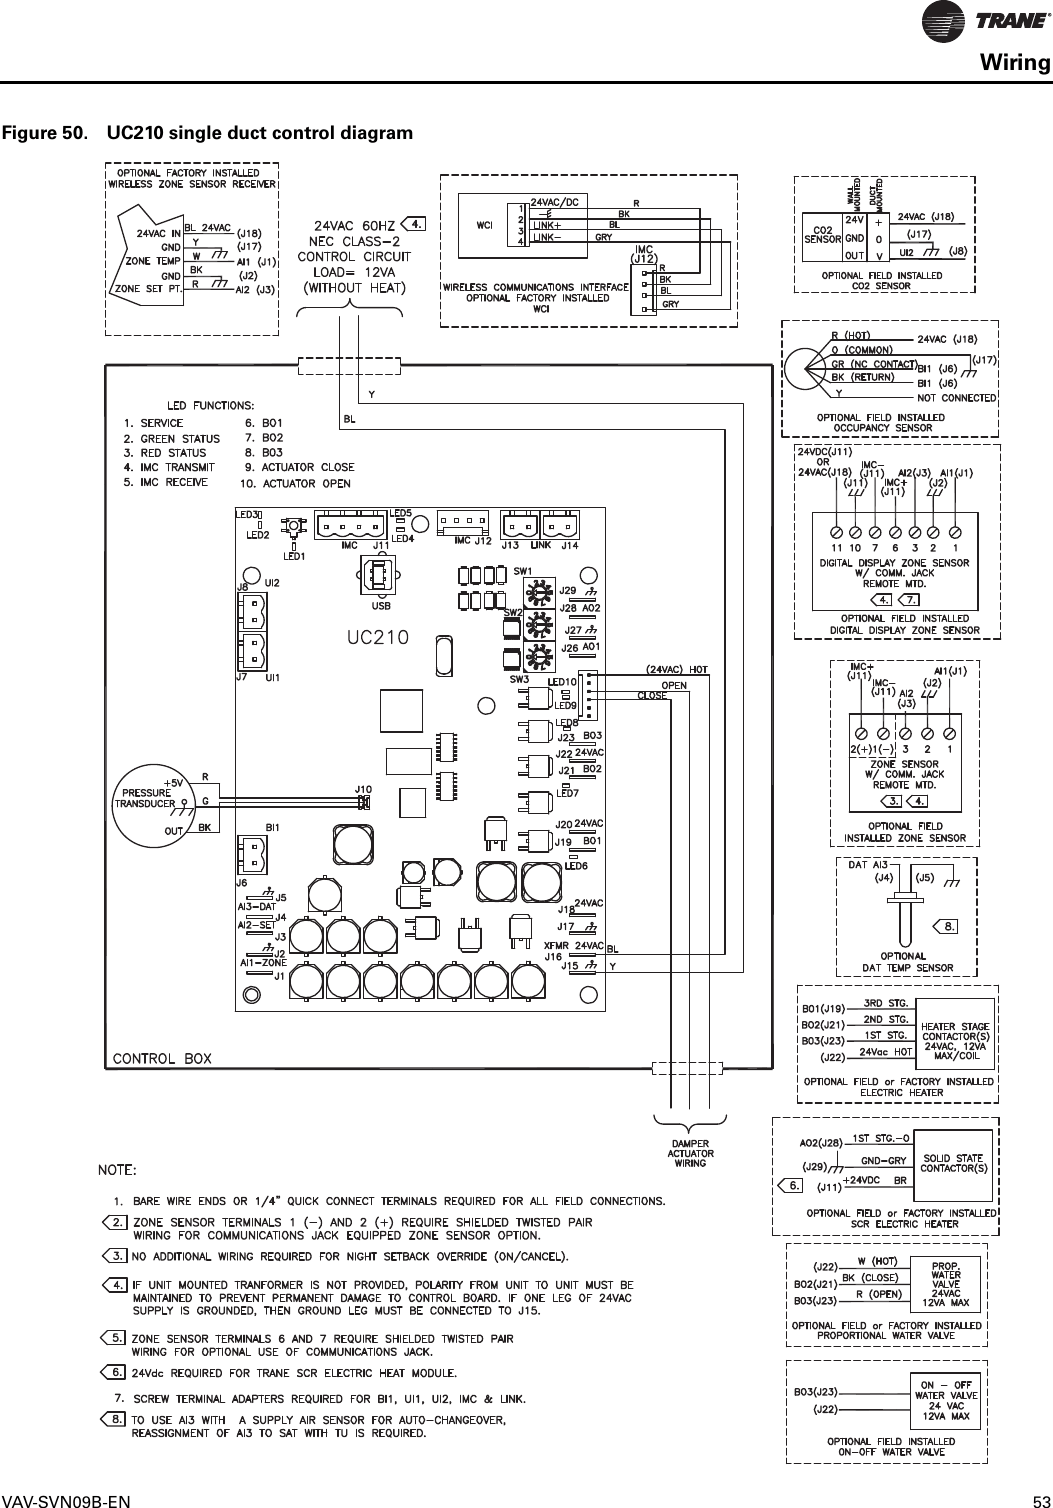 trane vav box wiring diagram photocell pdf xt500c thermostat imageresizertool com